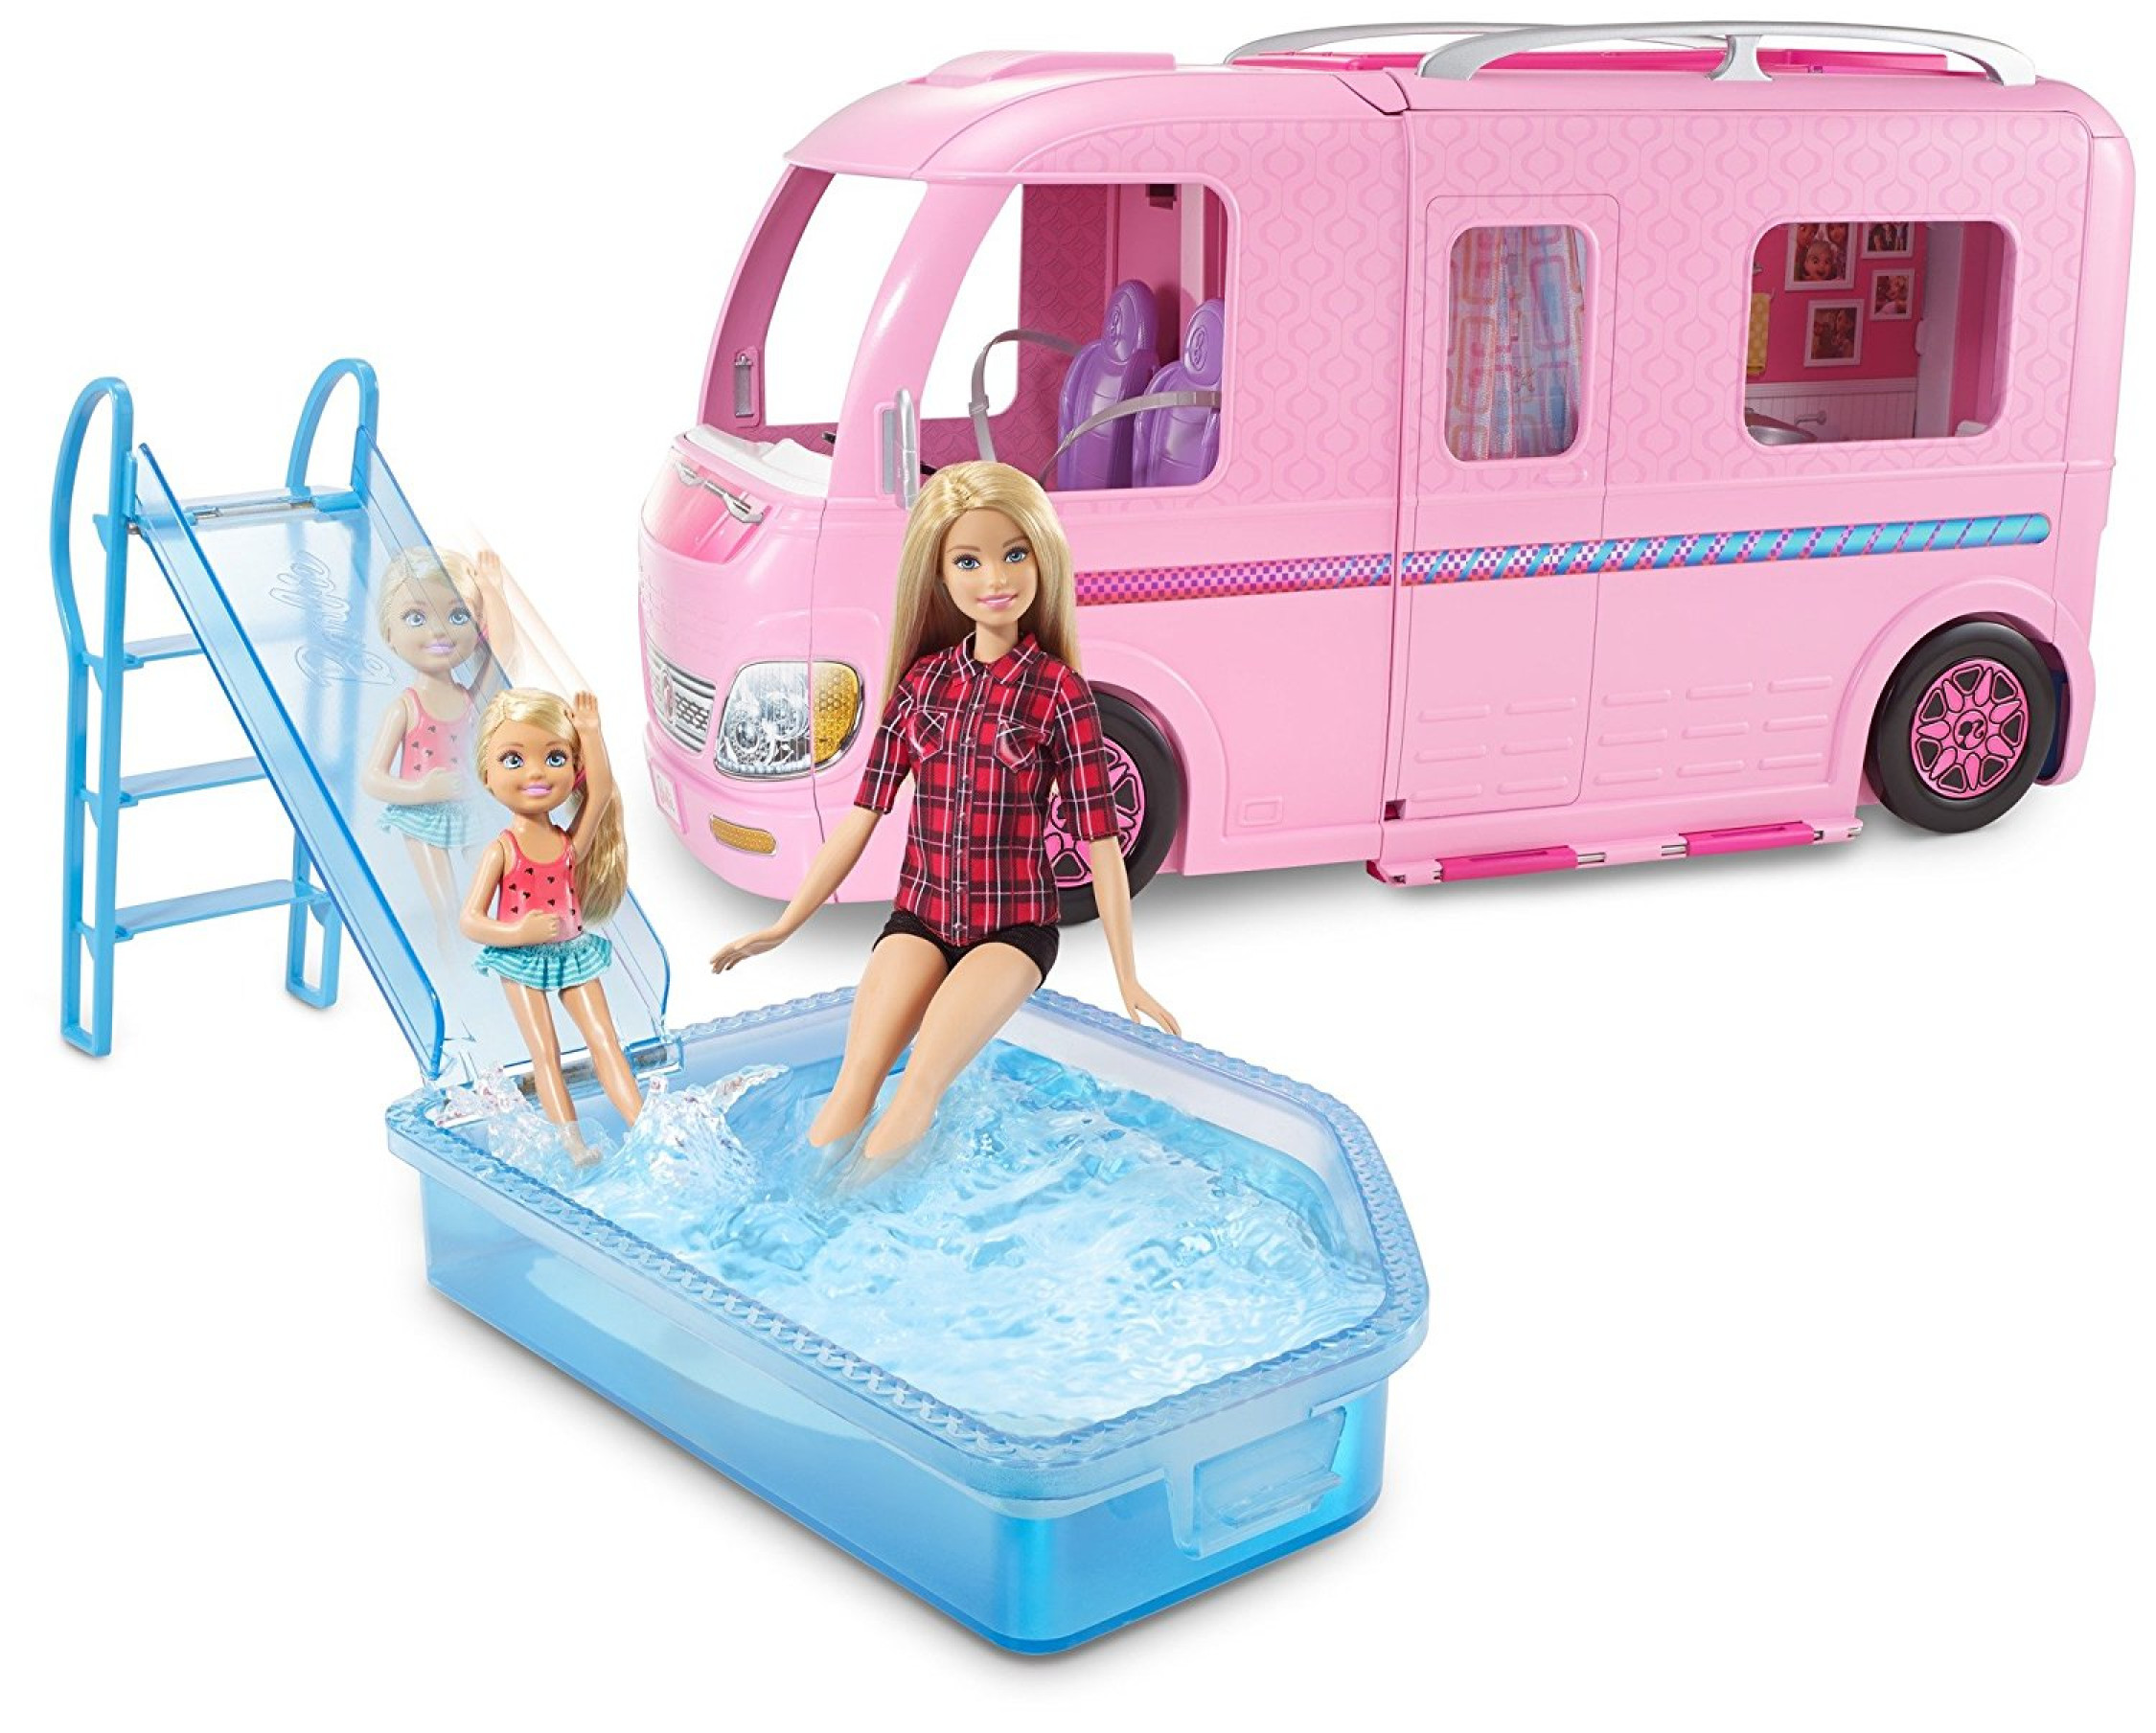 Barbie Toys Australia Barbie Fbr34 Camper Van Vehicle Fashion Doll And